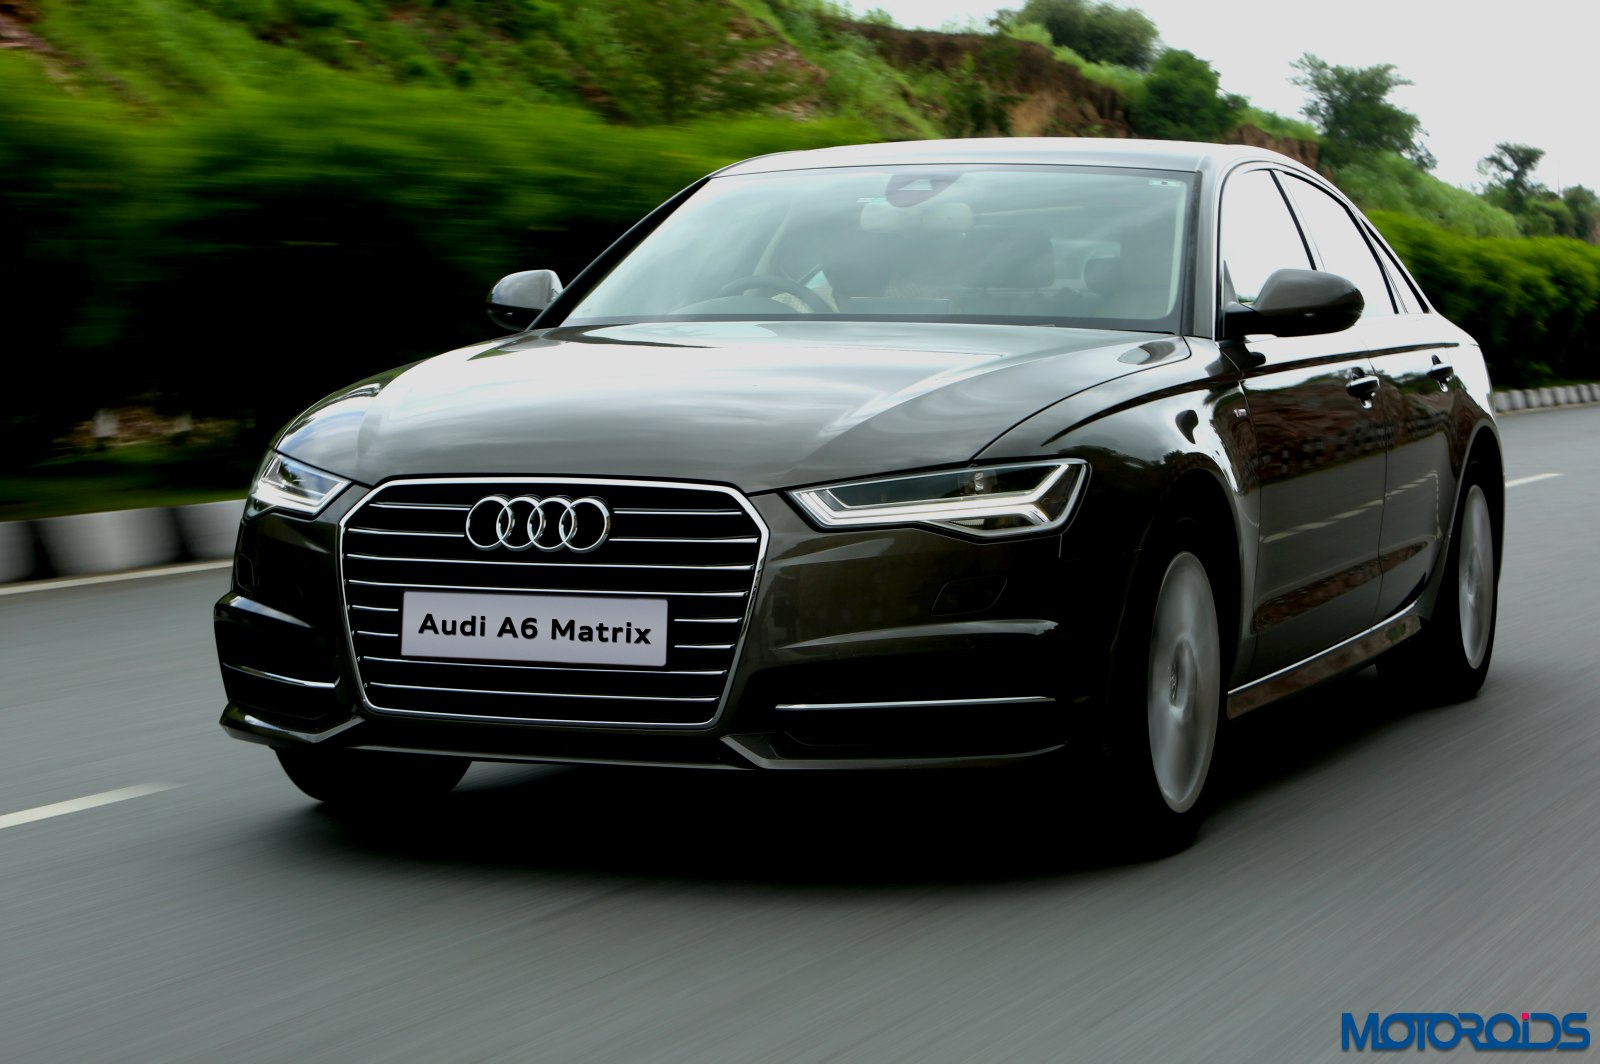 2015 audi a6 matrix facelift india review 2. Black Bedroom Furniture Sets. Home Design Ideas